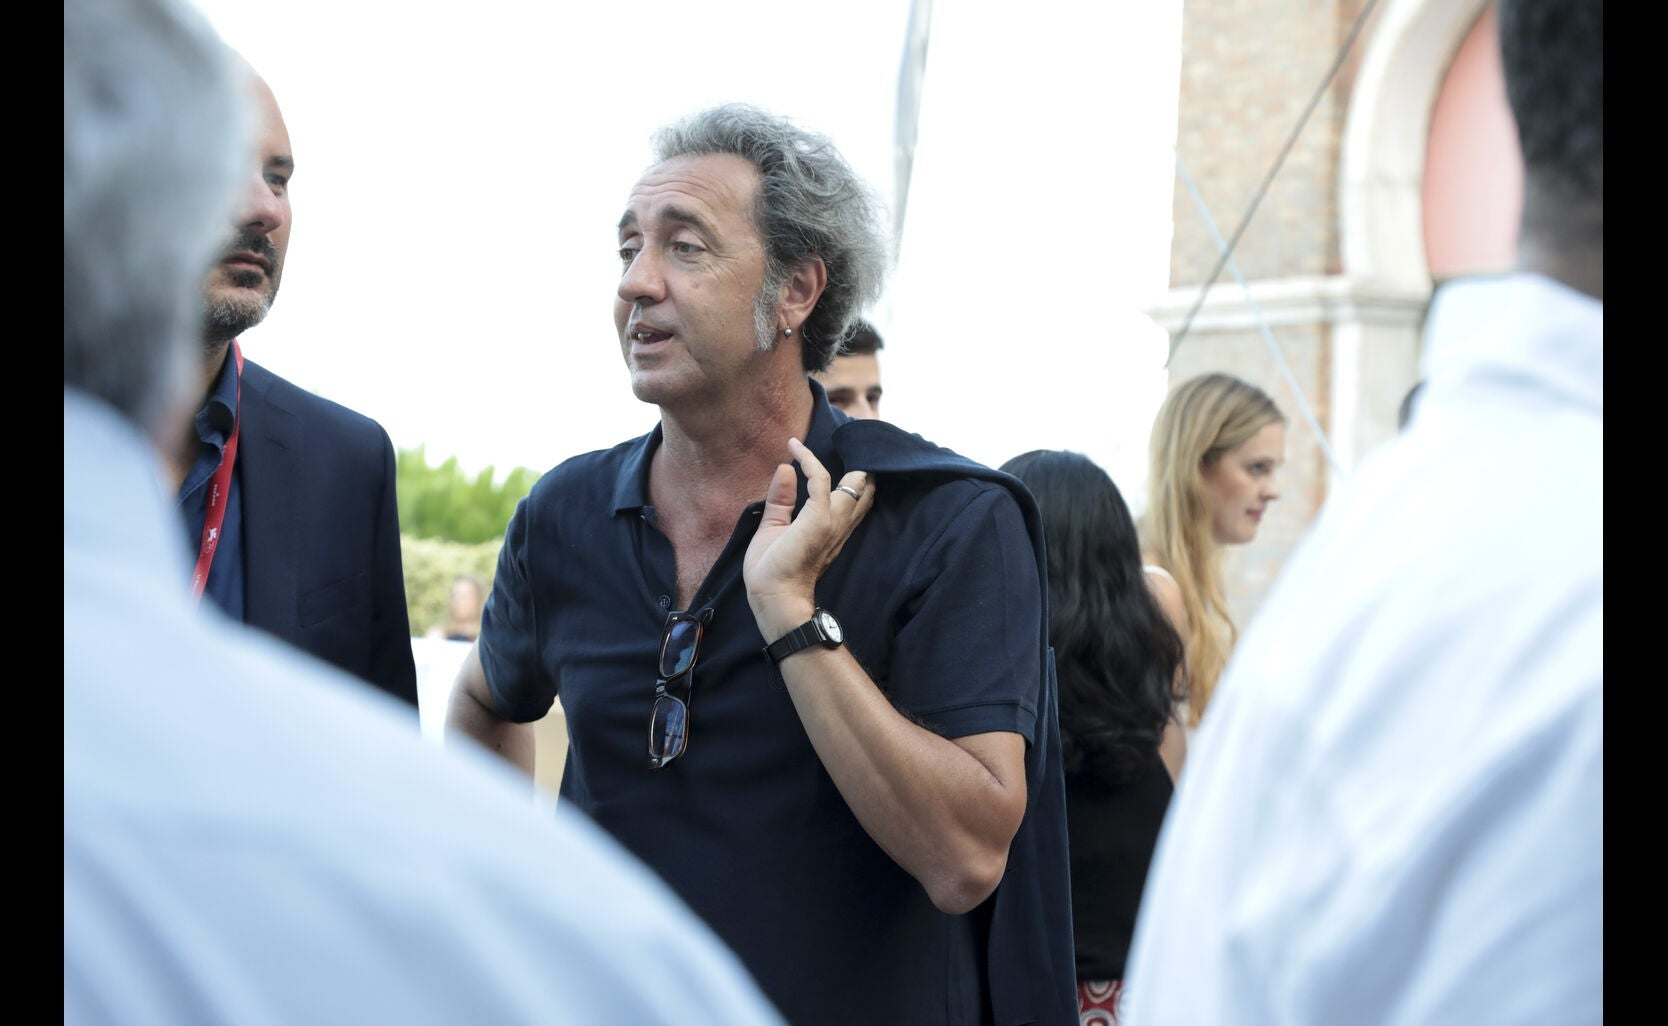 Paolo Sorrentino at the HFPA party, Venice 2019